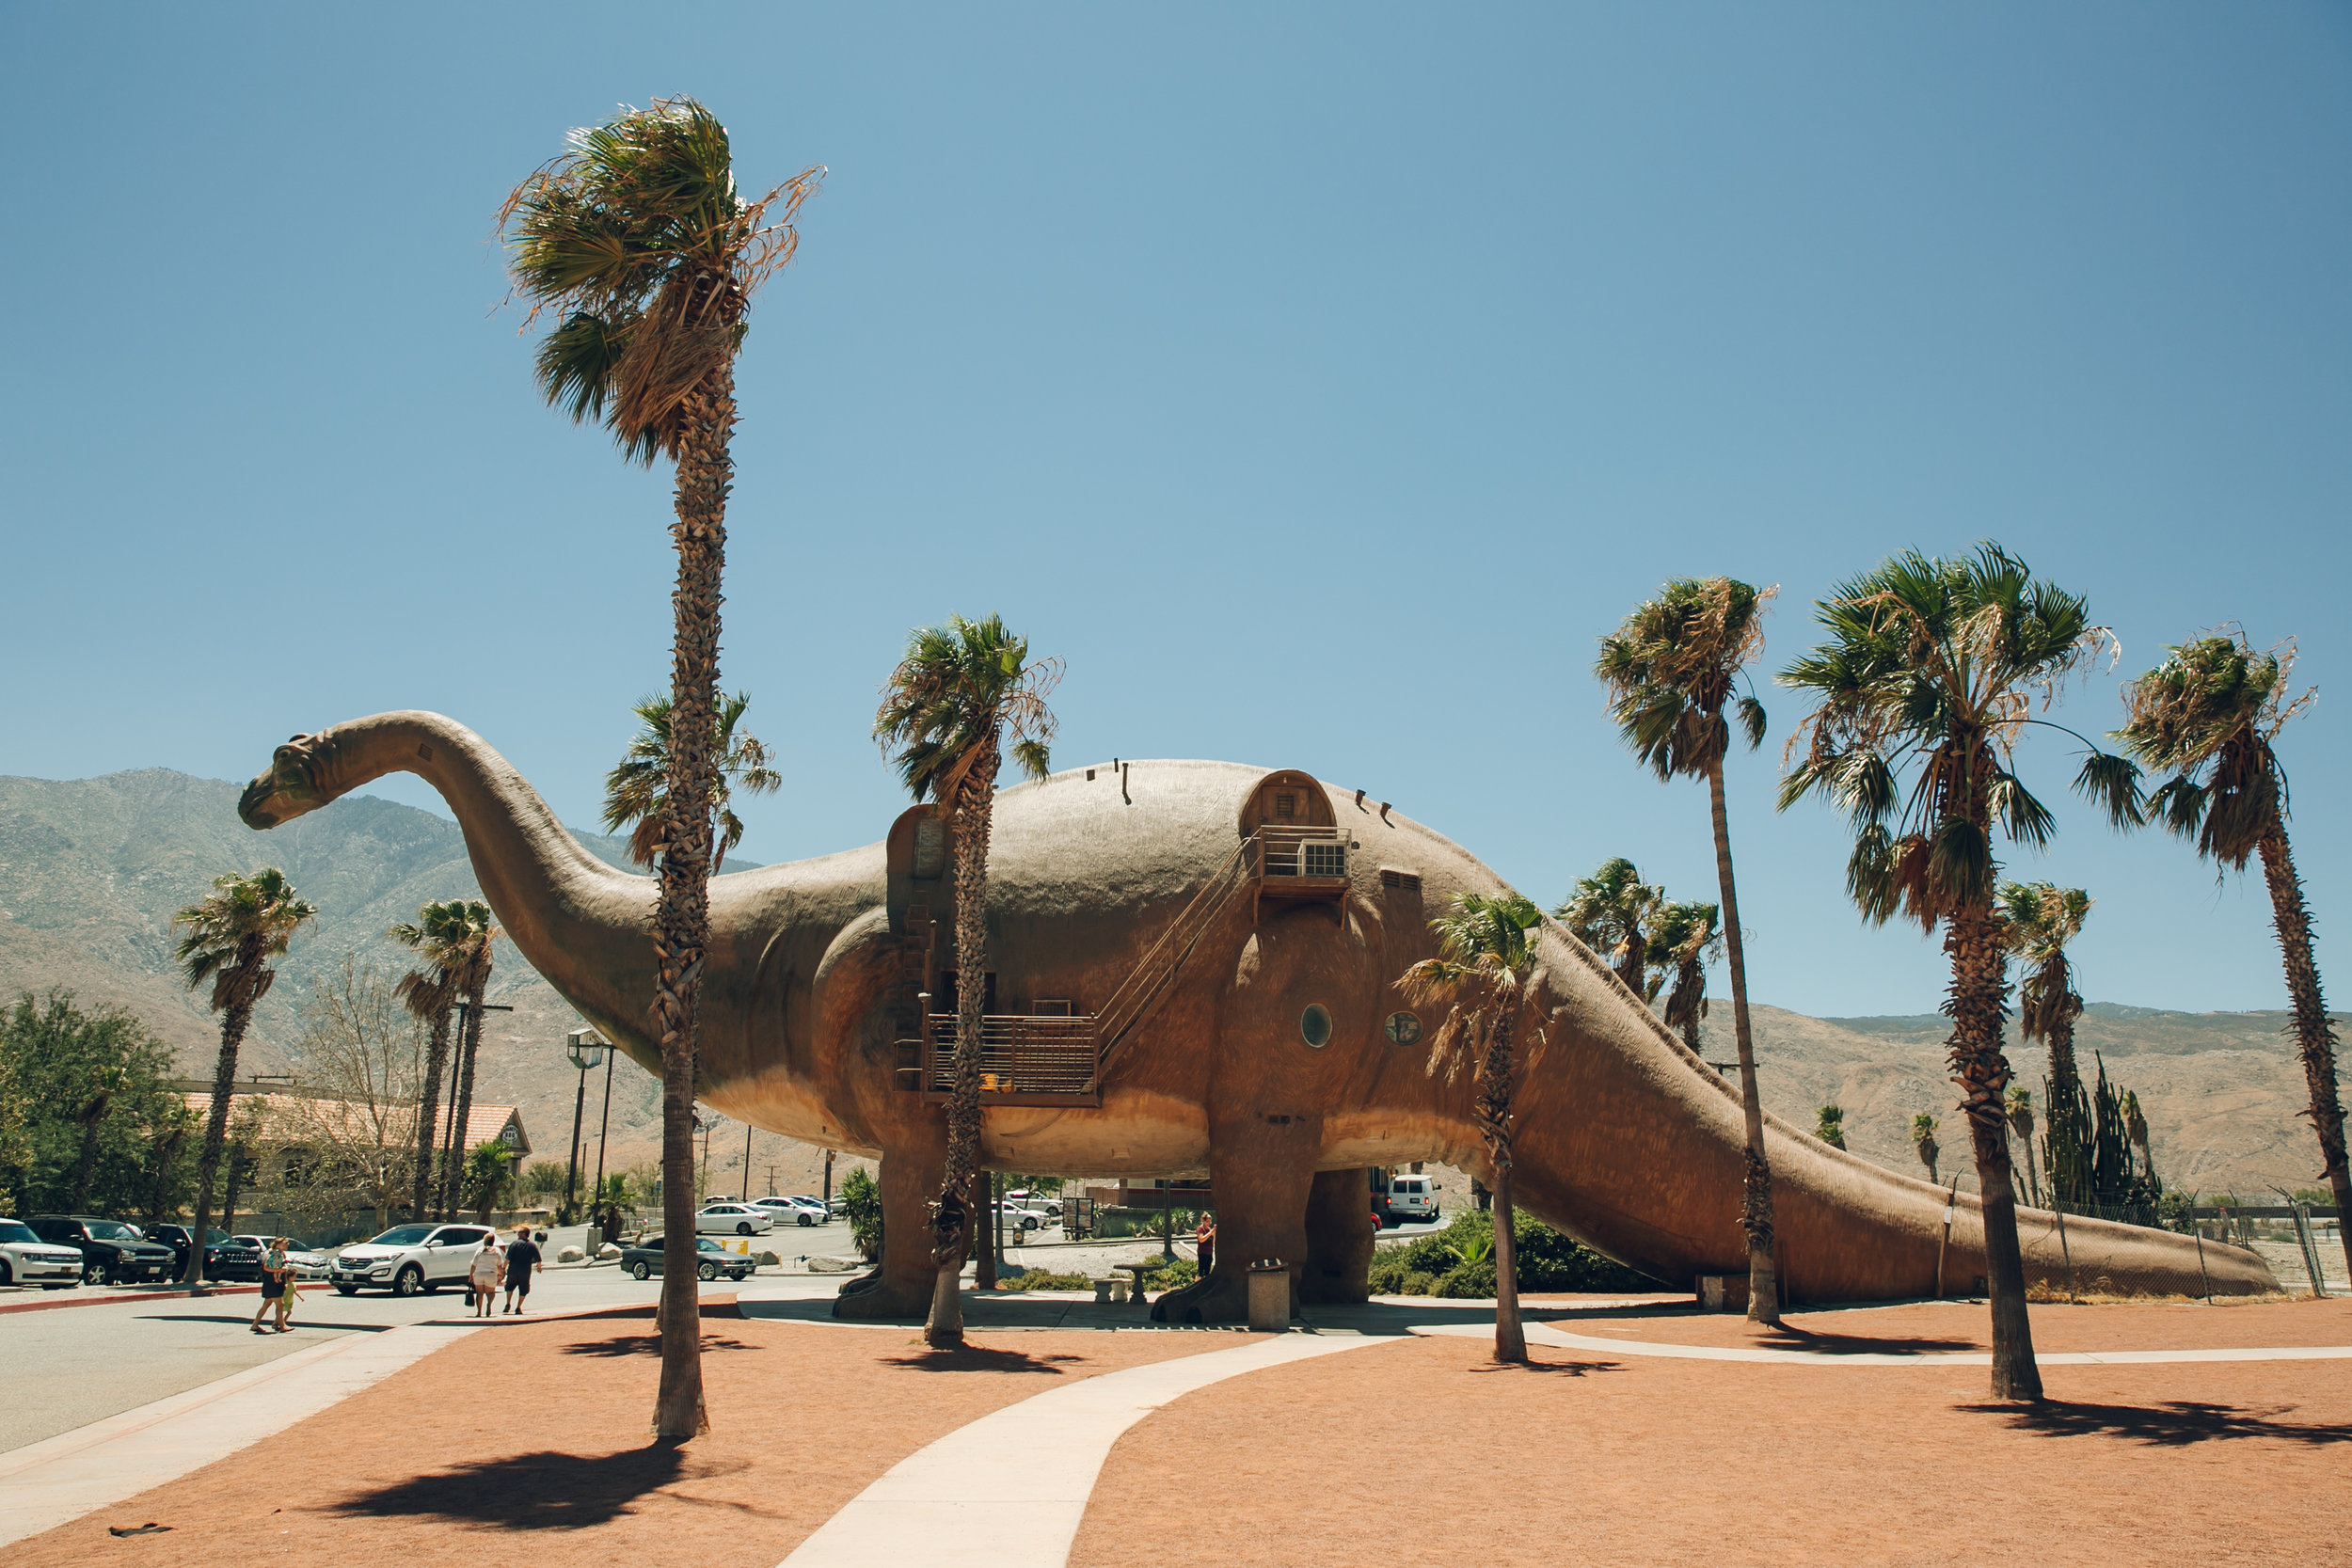 The (bizarre) Cabazon Dinosaurs in between Palm Springs and LA.